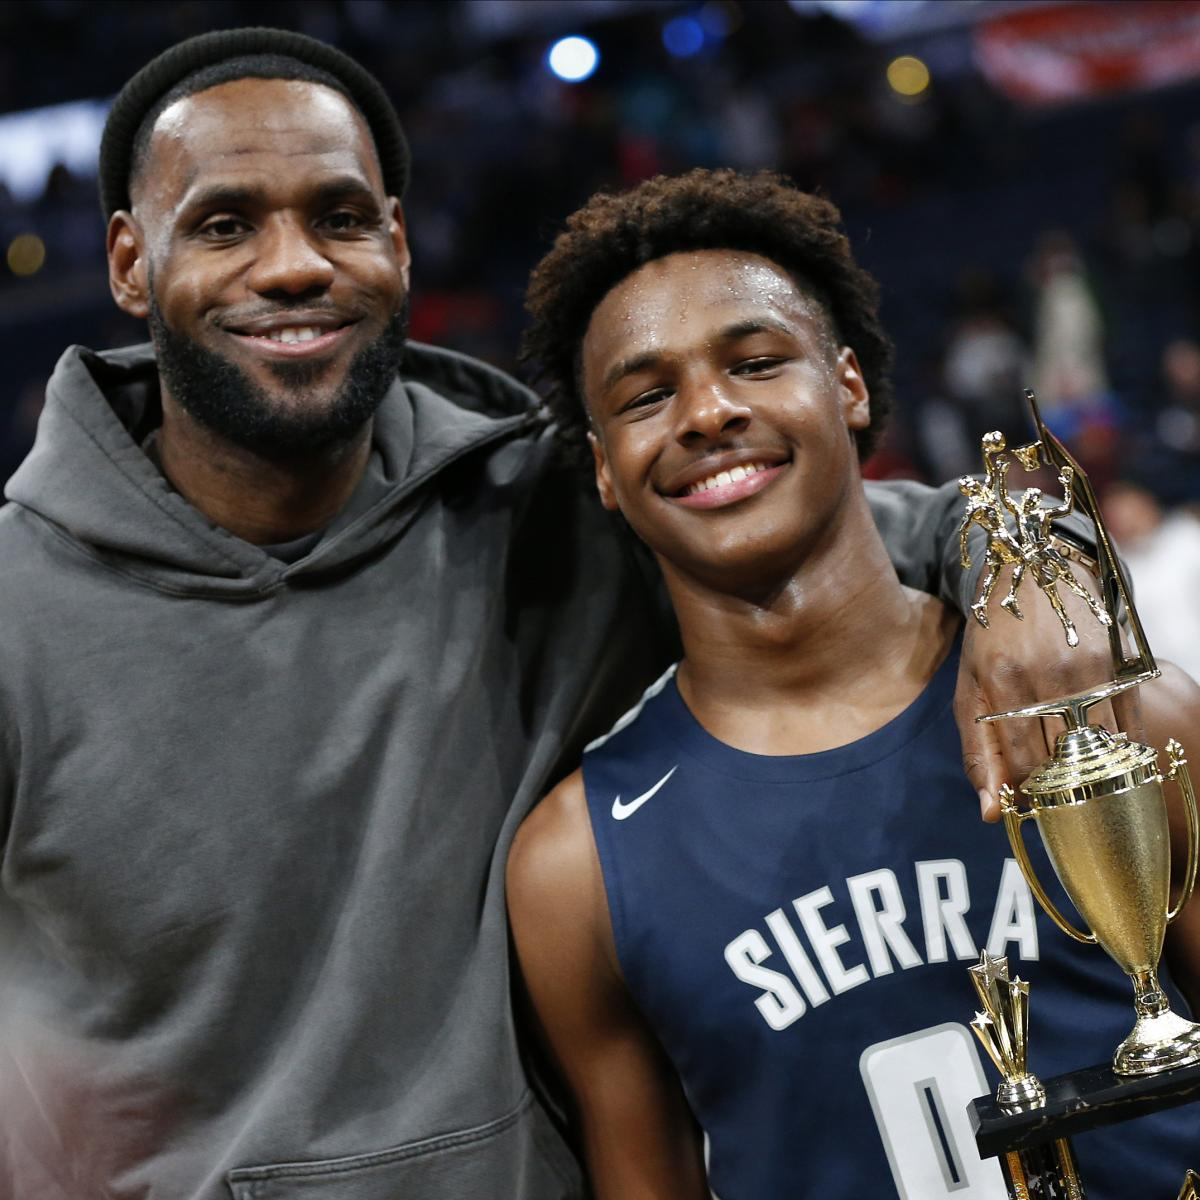 LeBron James Says Playing with Son Bronny in NBA 'Definitely One of My Goals'